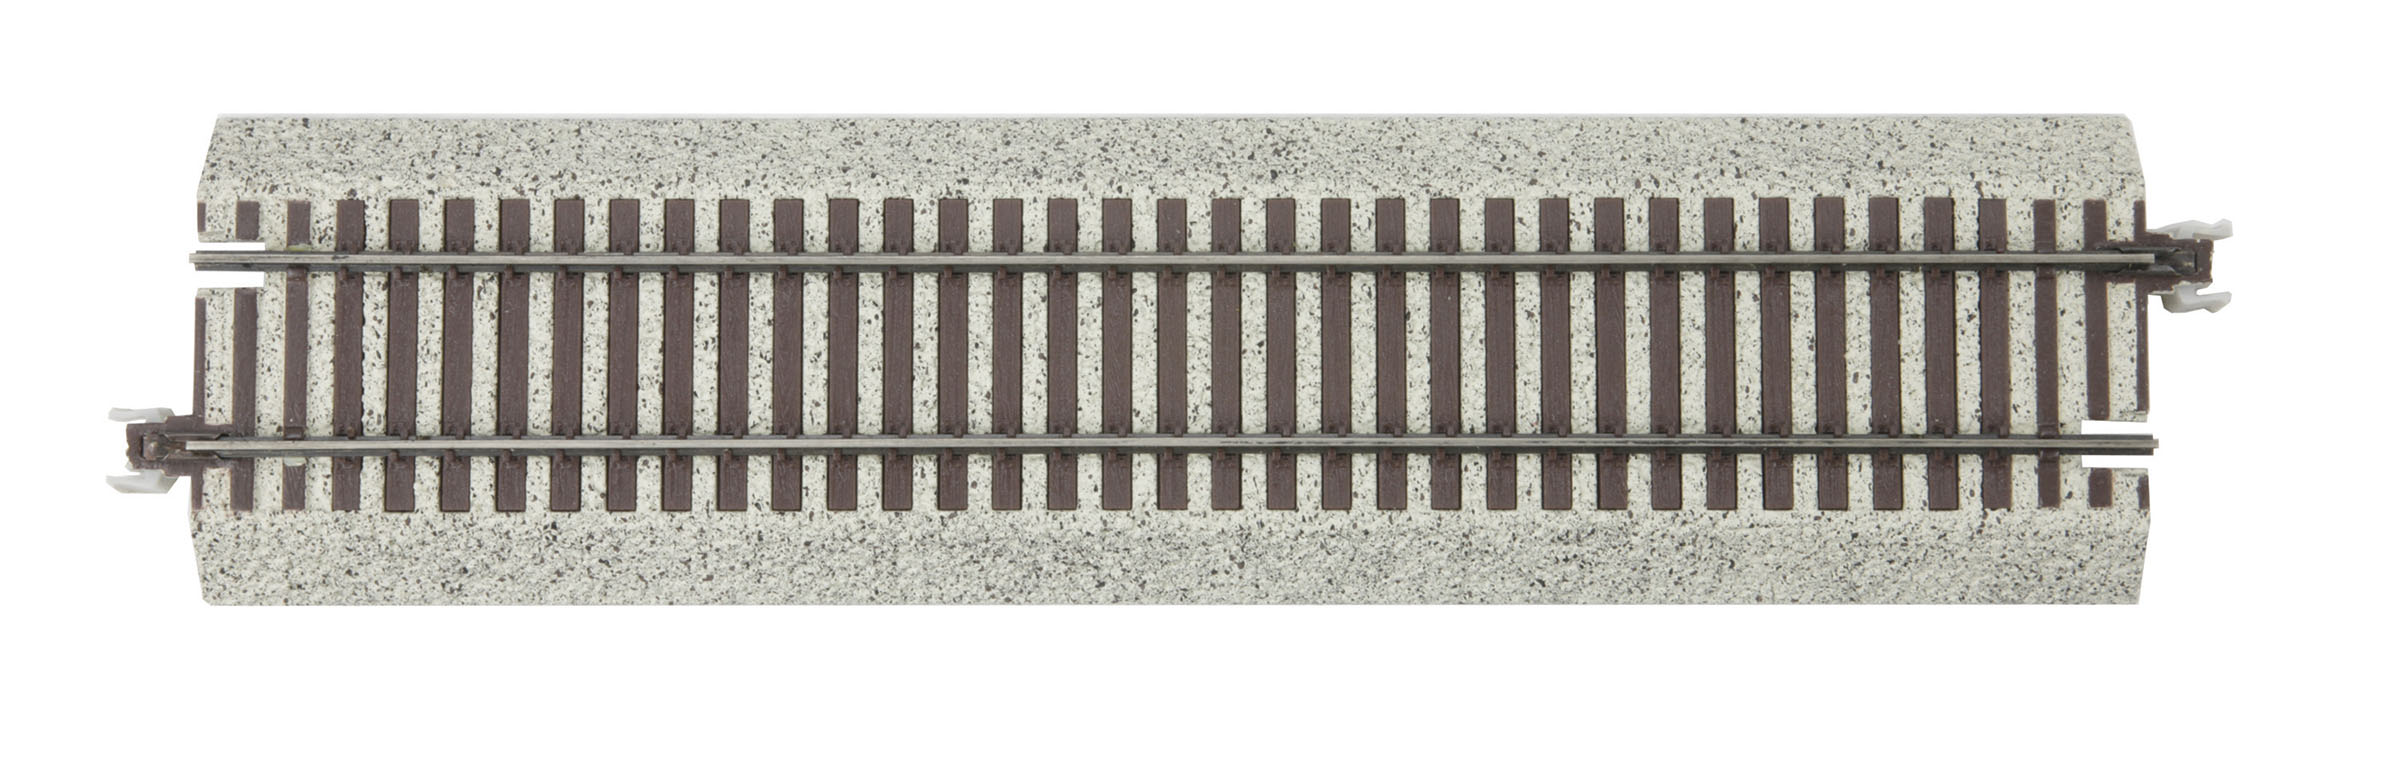 "MTH 35-1002 10"" Straight Track Section S Trax pkg(6)"